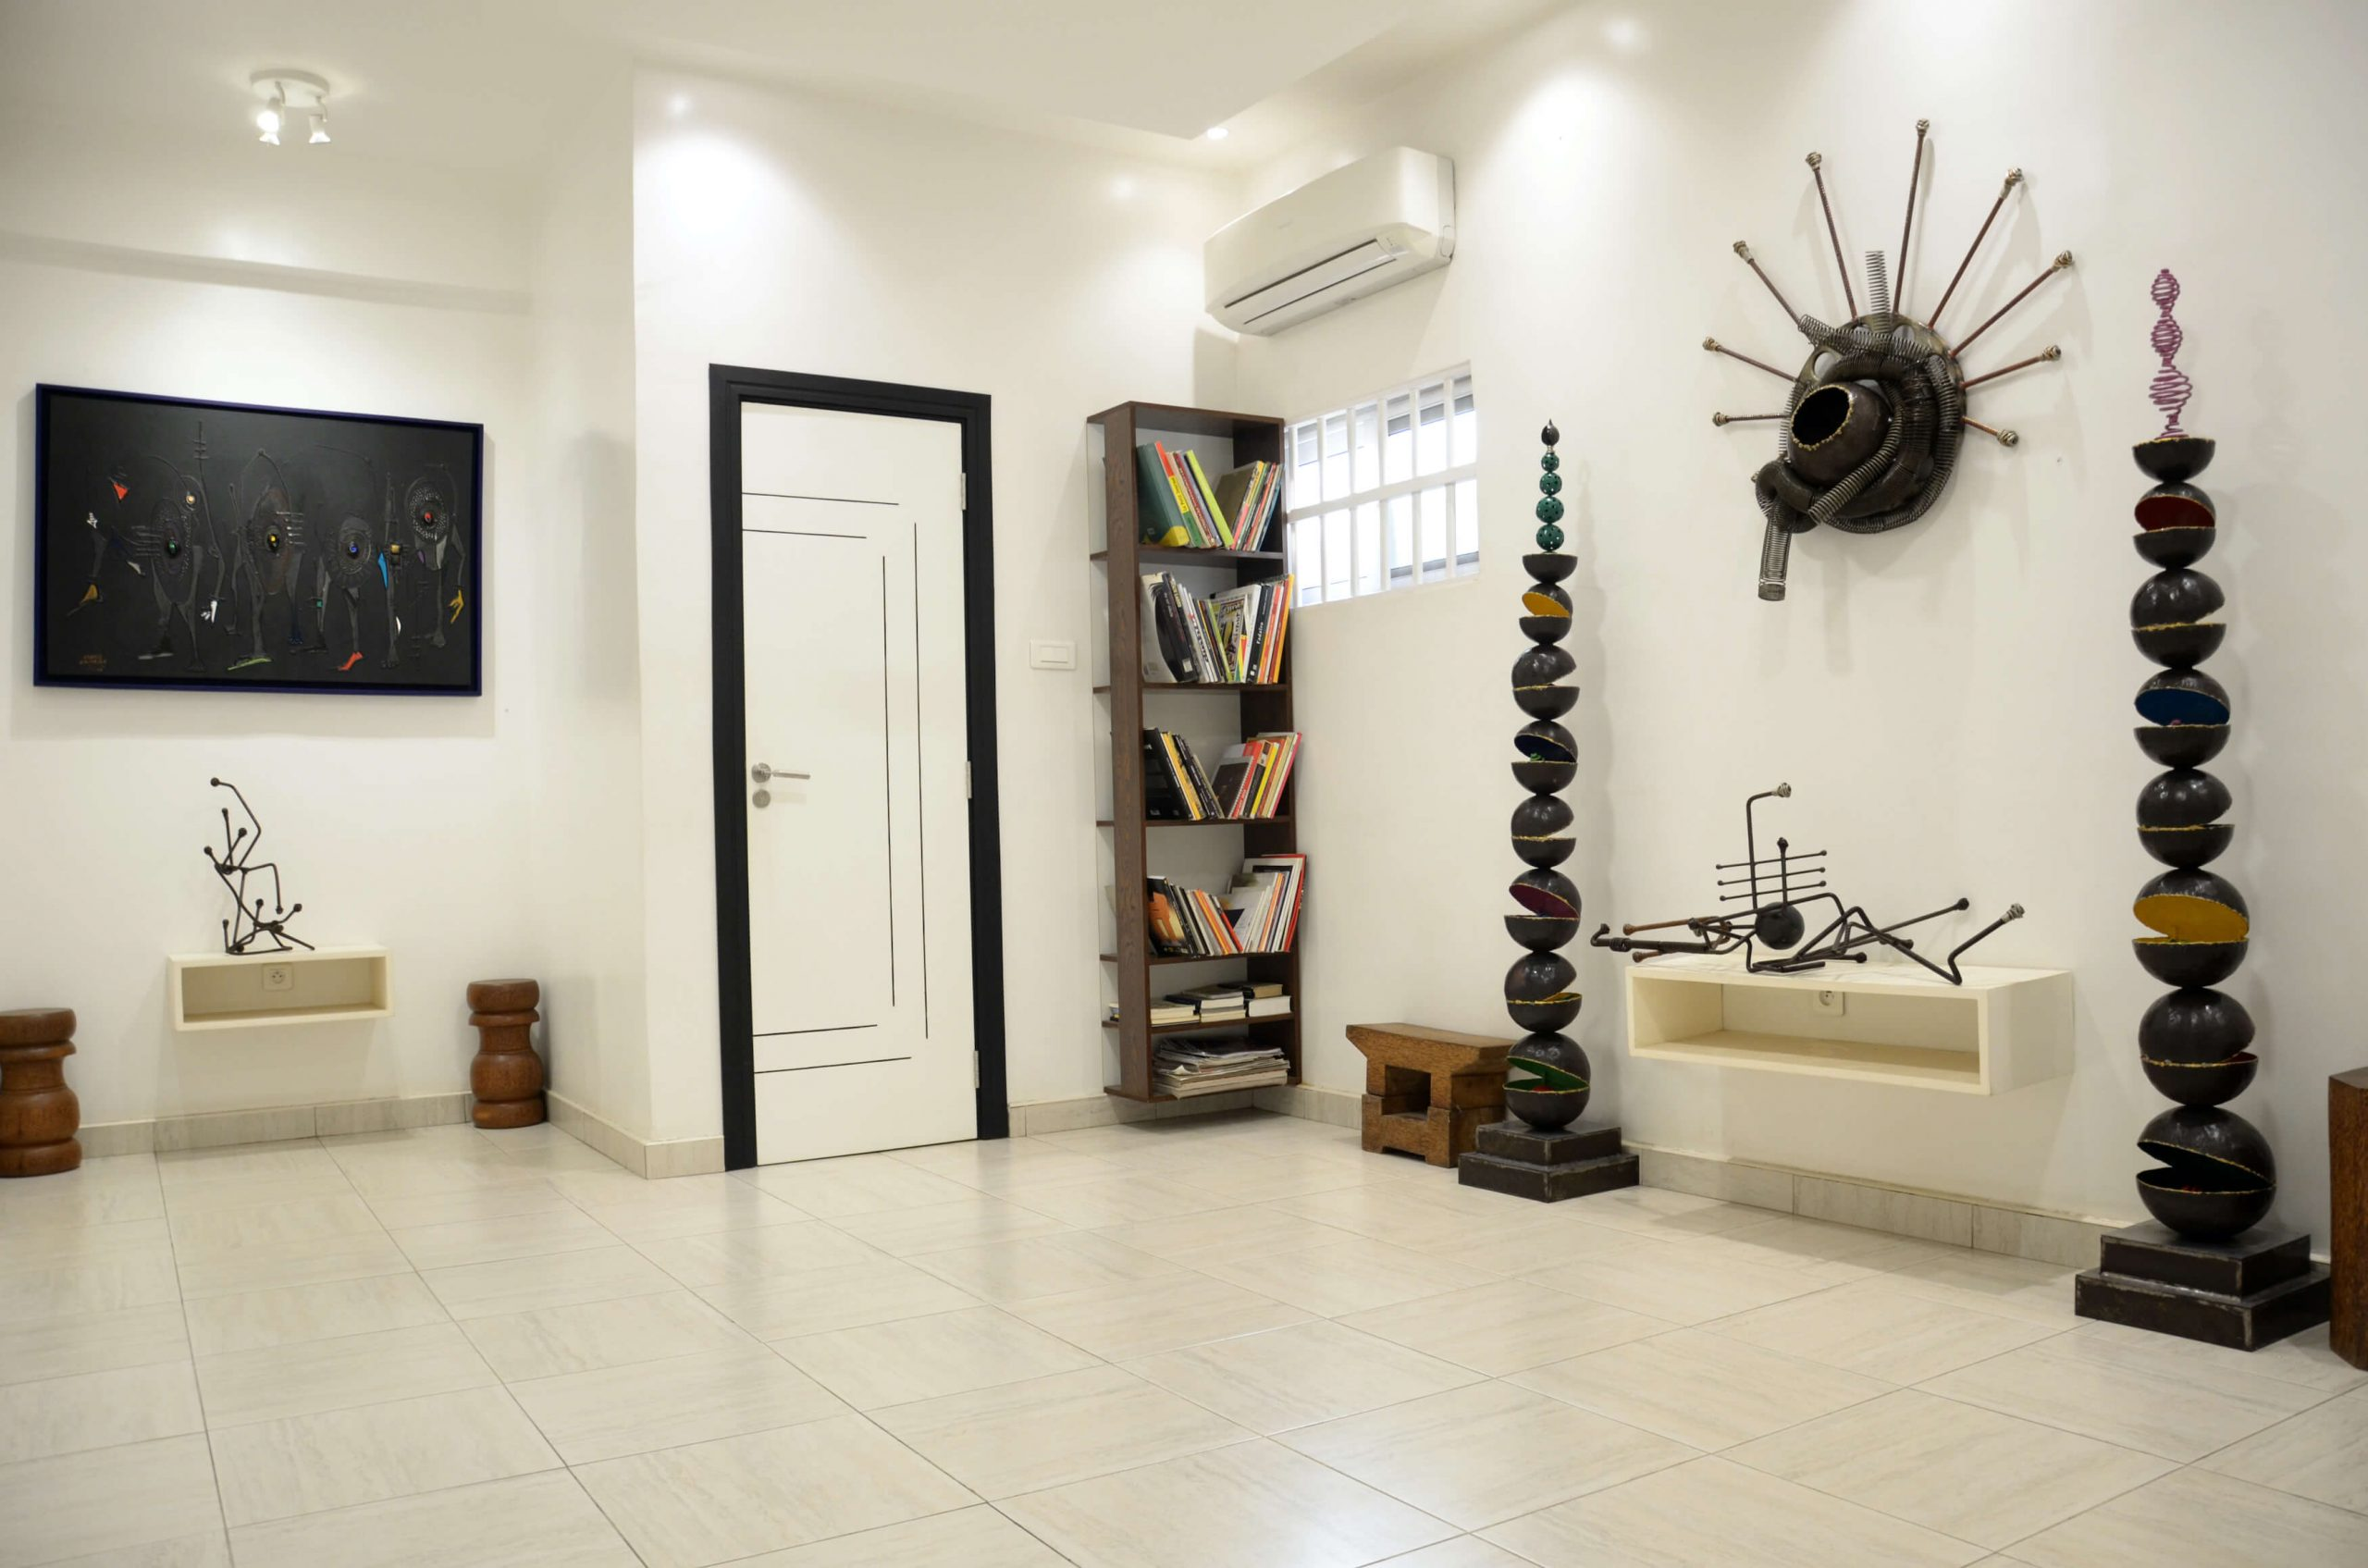 gallery charly, cotonou, benin, art and about africa